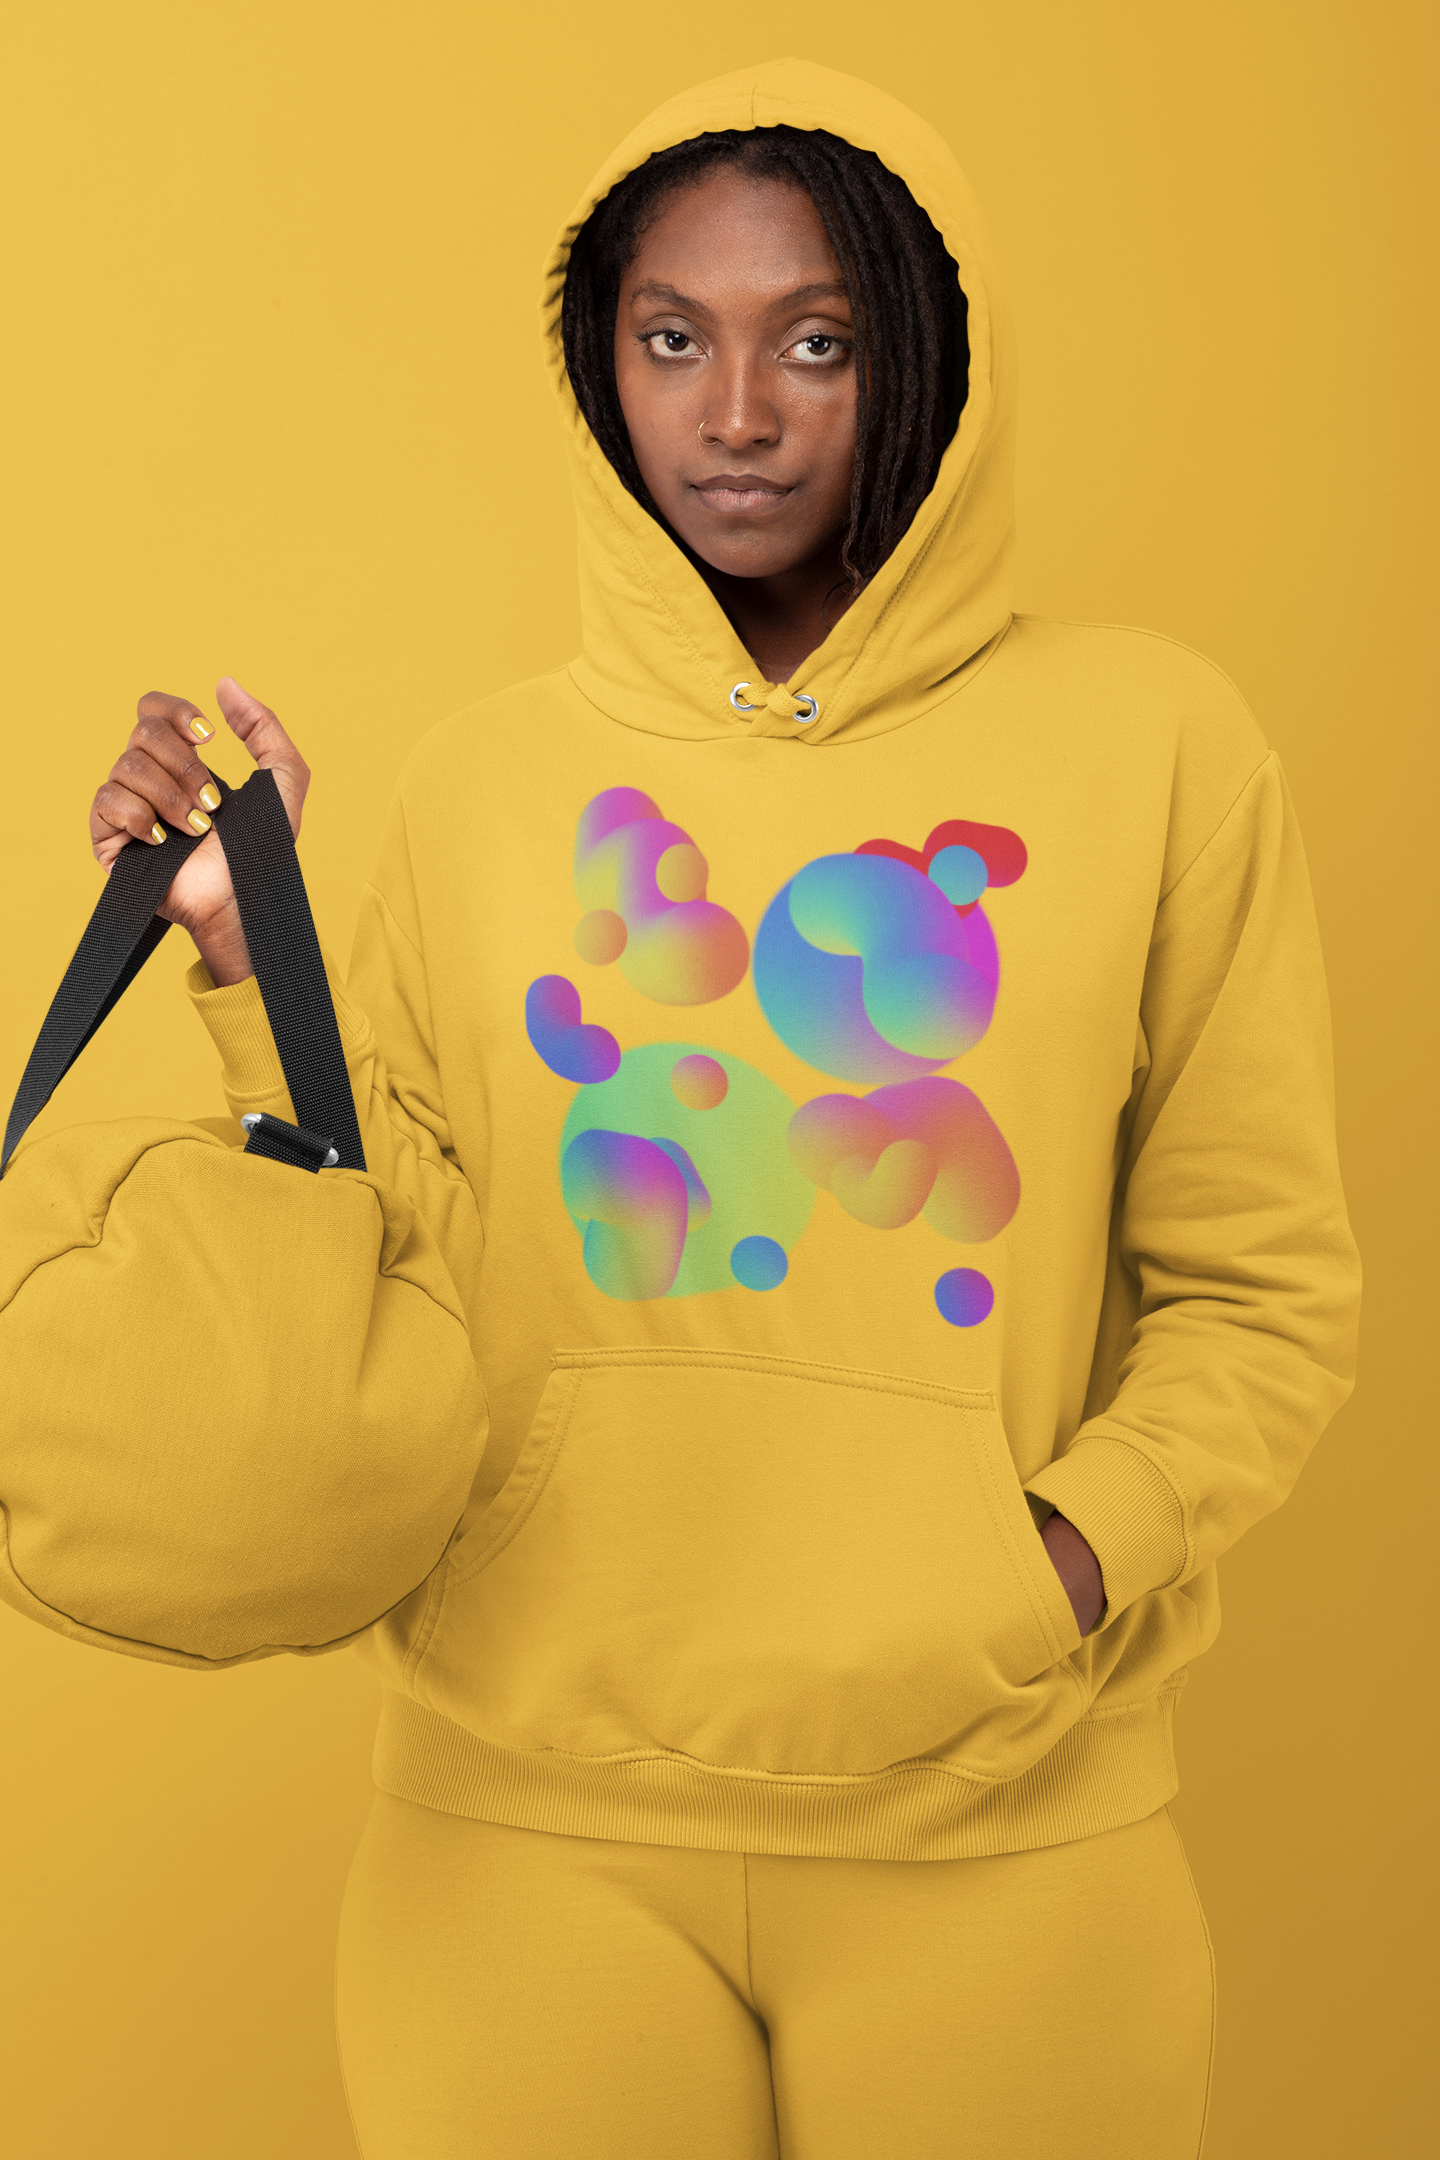 hoodie-mockup-featuring-a-woman-in-a-monochromatic-outfit-at-a-studio-32809